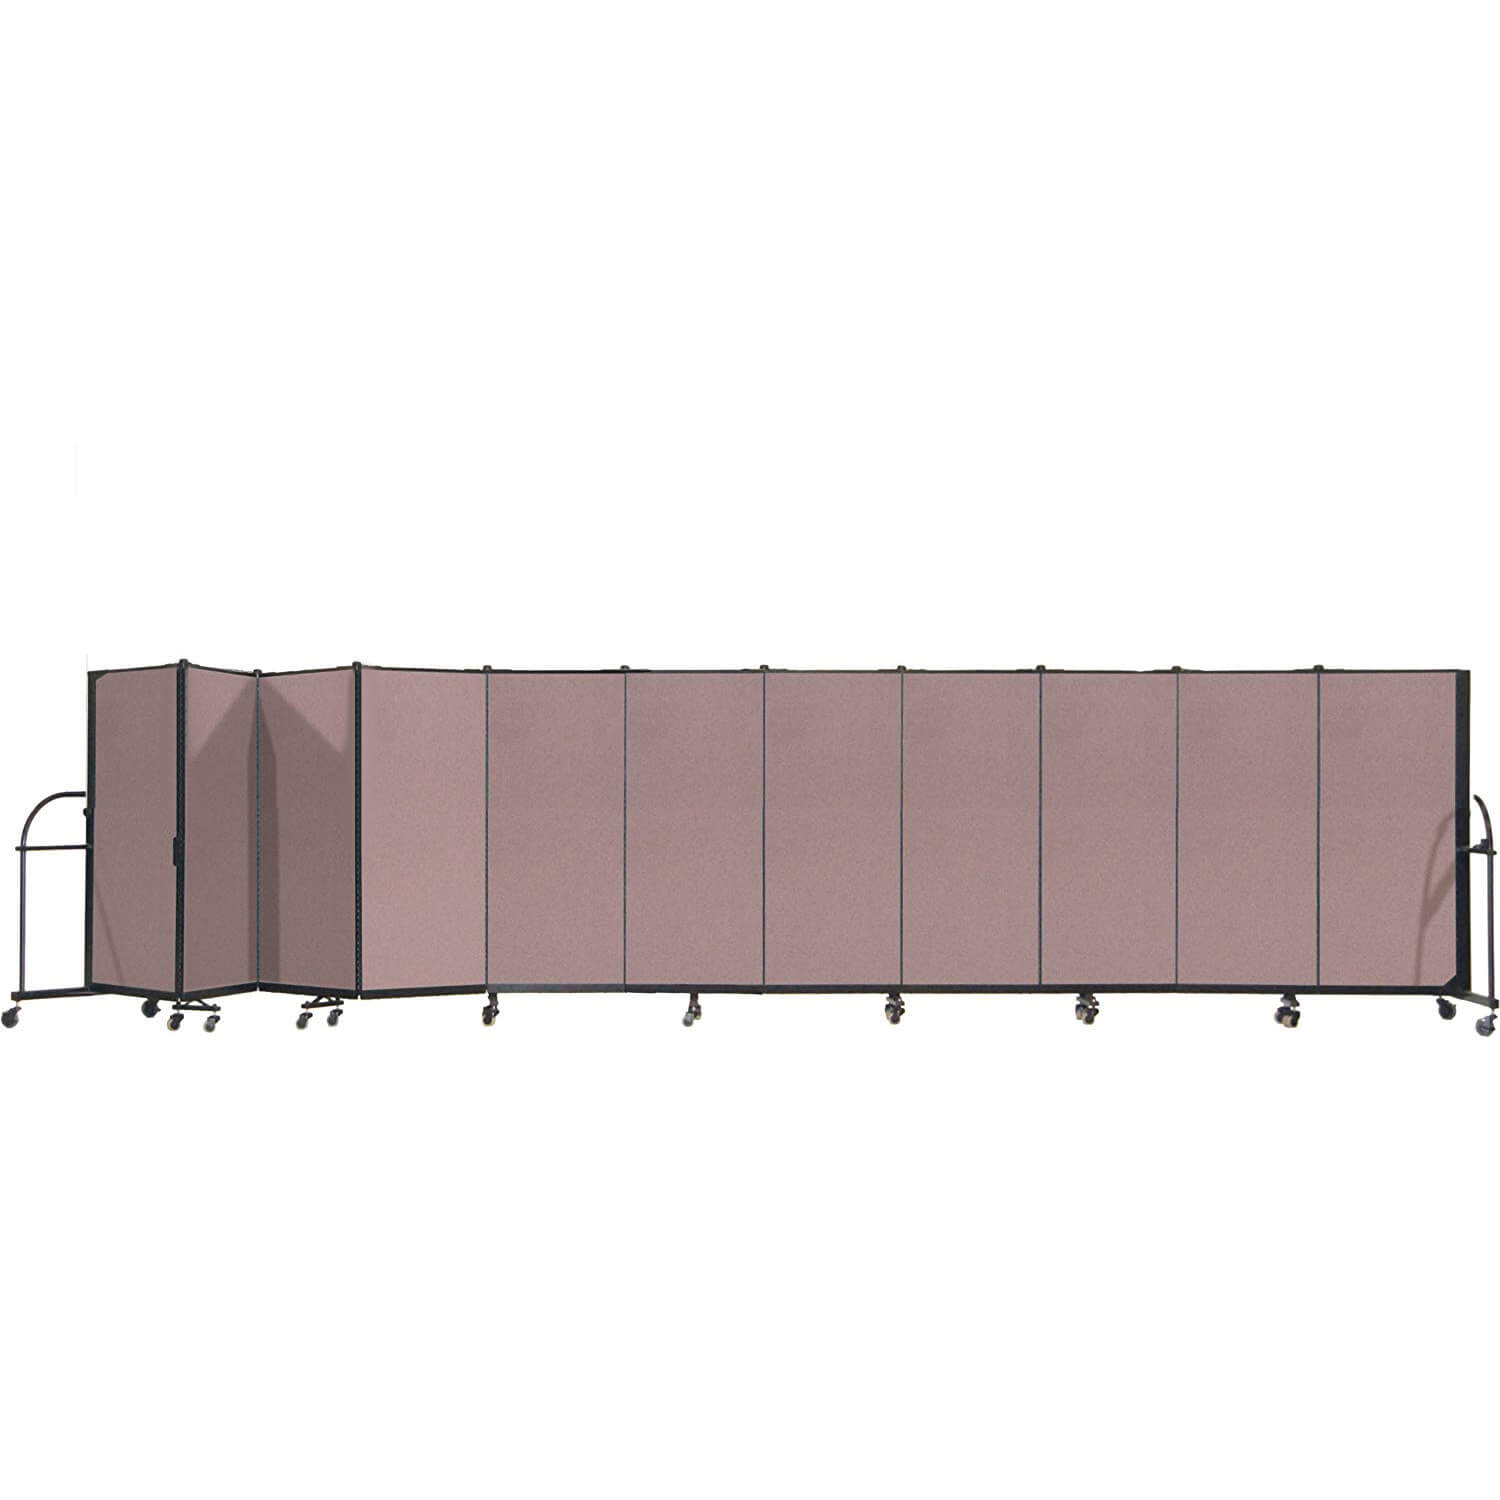 Panel room dividers CUB QSCFSL4011DM RCS 1 2